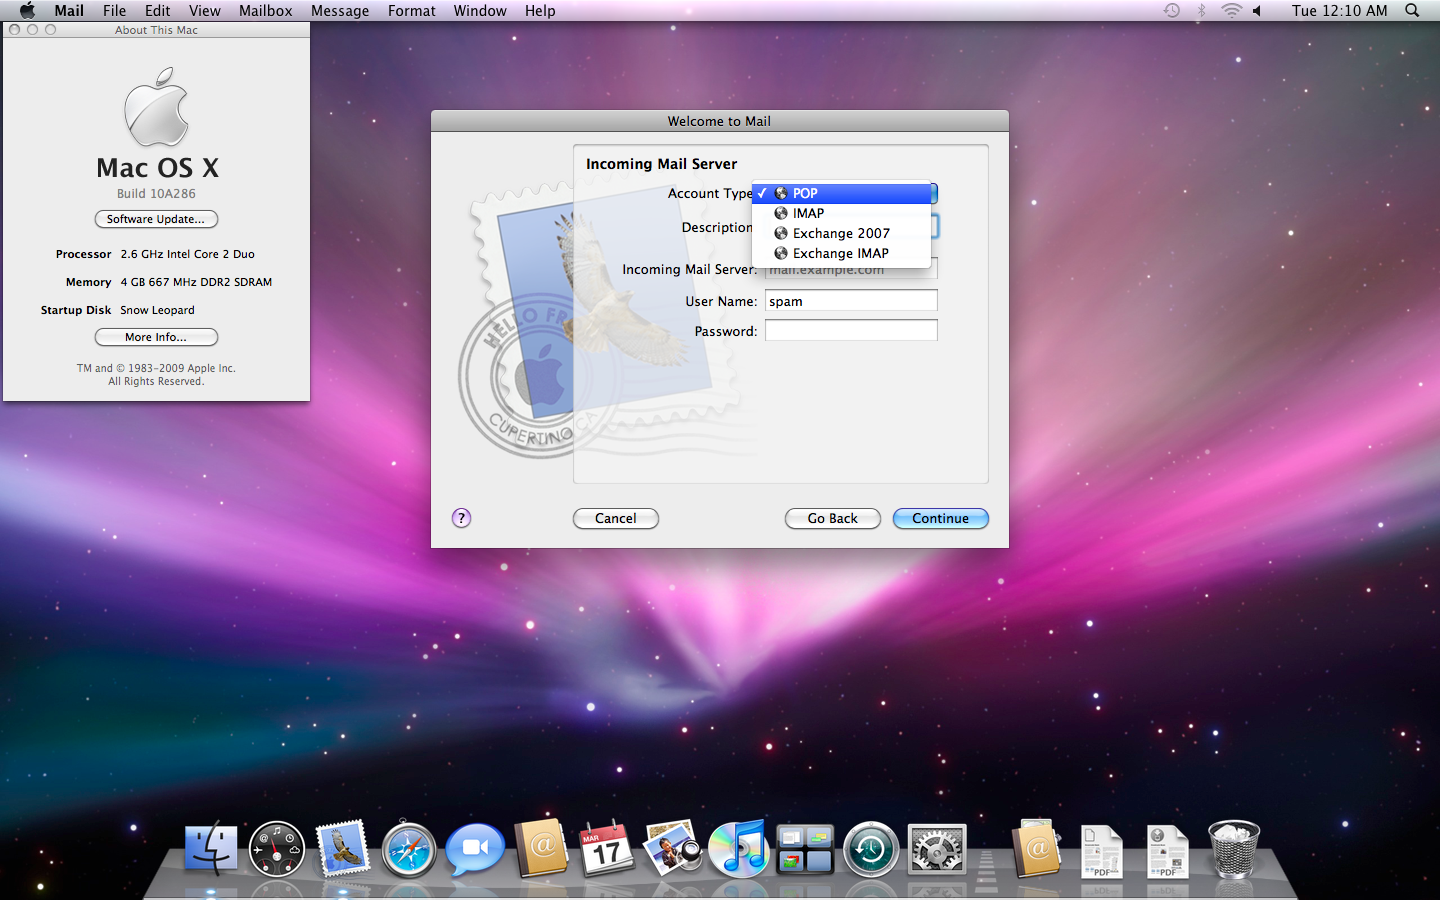 Mac OS X Snow Leopard: 10.6 Build 10A286 Exclusive Preview ...